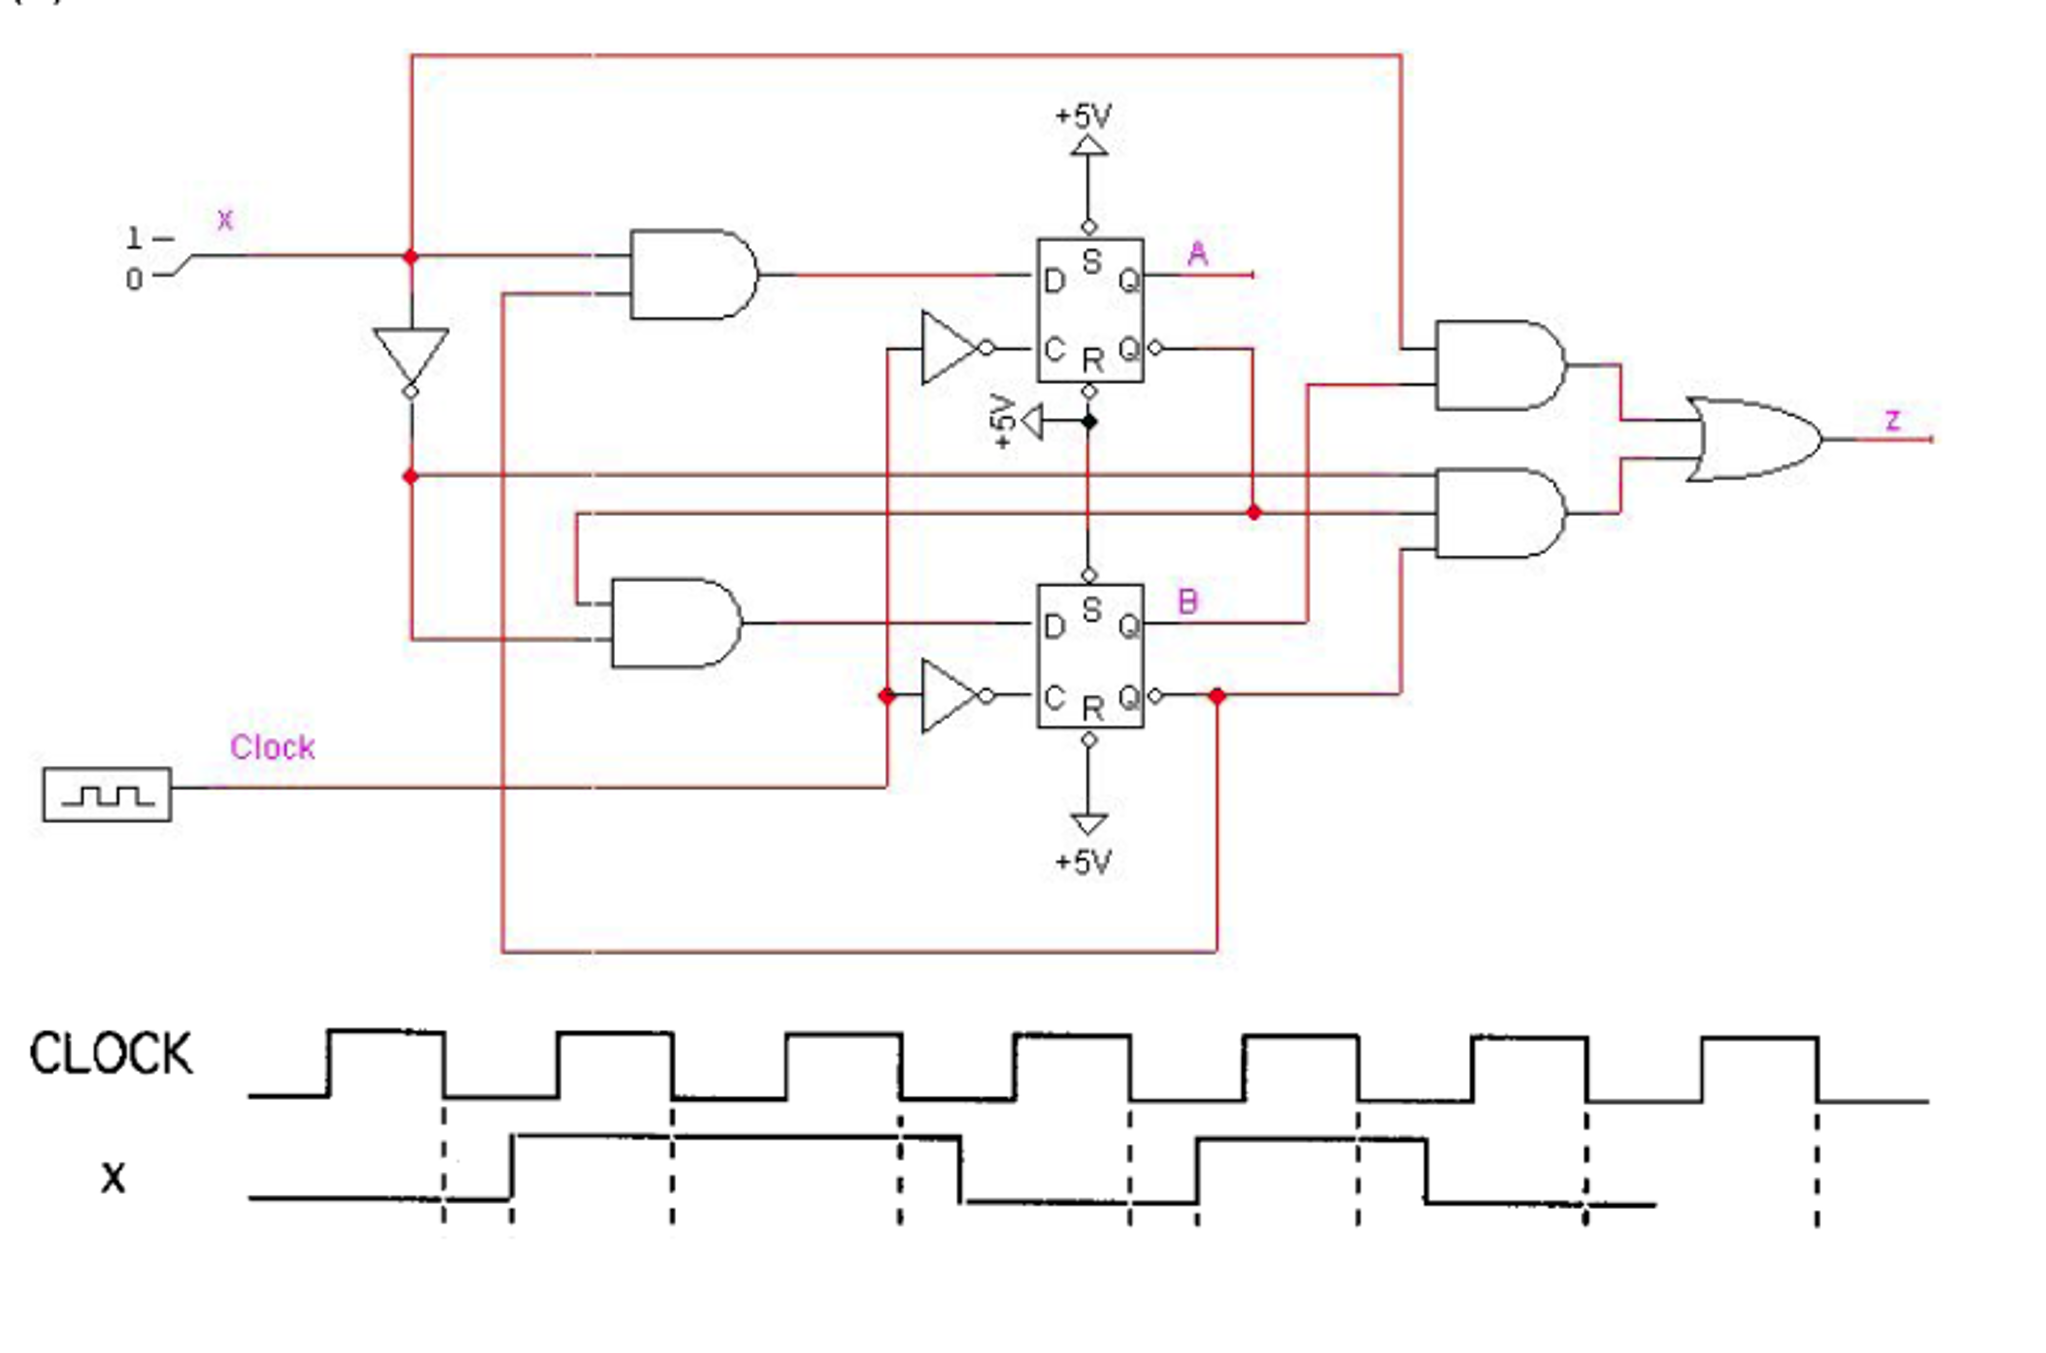 Solved For Each Of The Following Circuits Complete T Flip Flop Circuit Diagram 5v S A D C R Clock